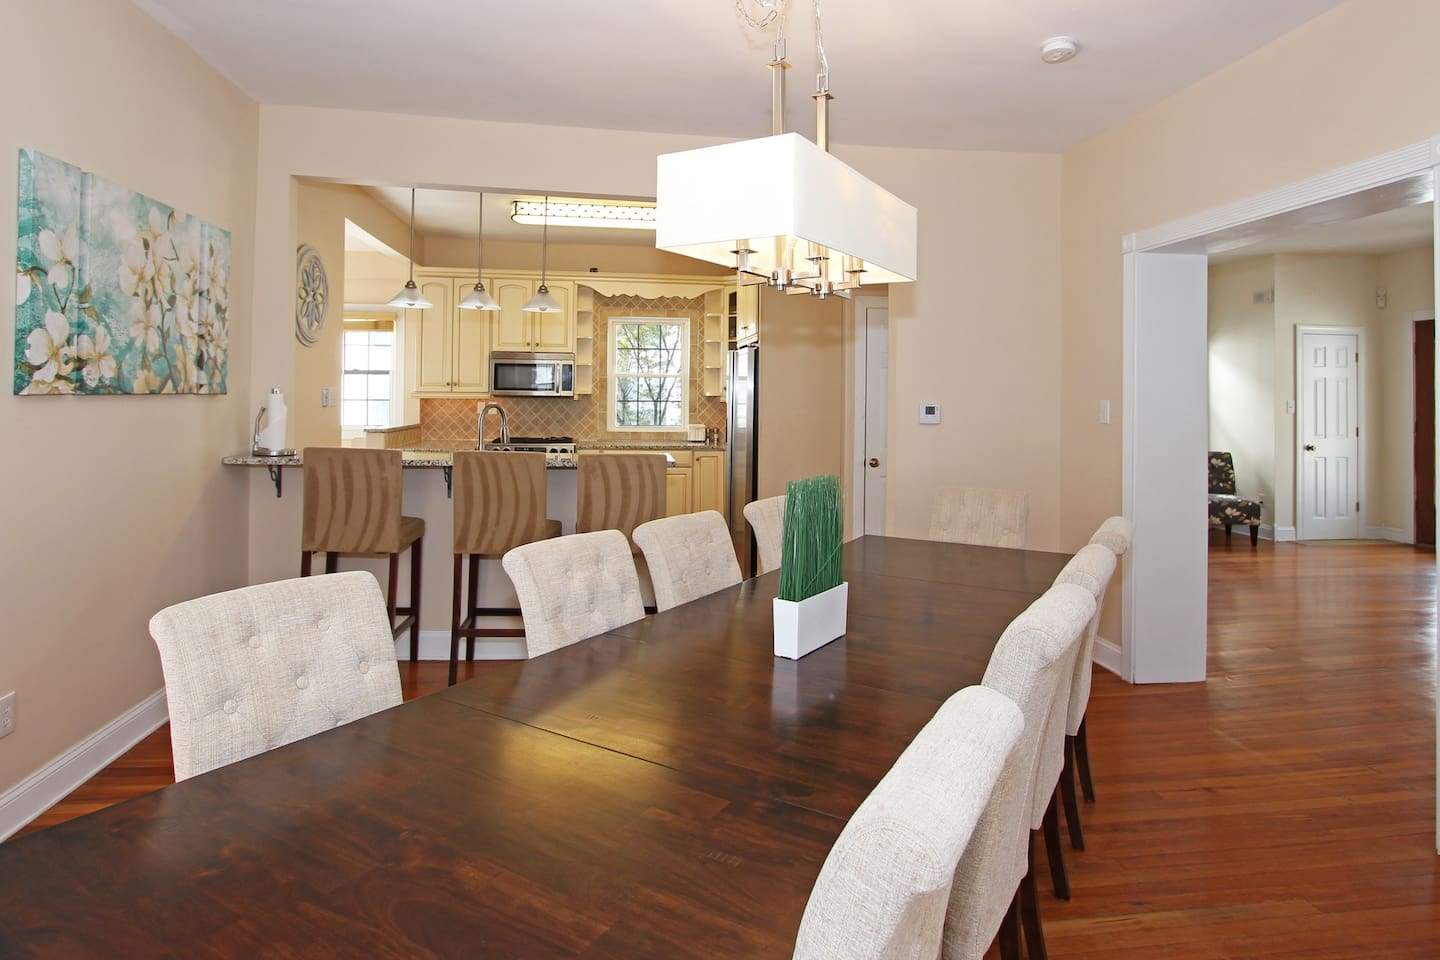 Dining and kitchen area